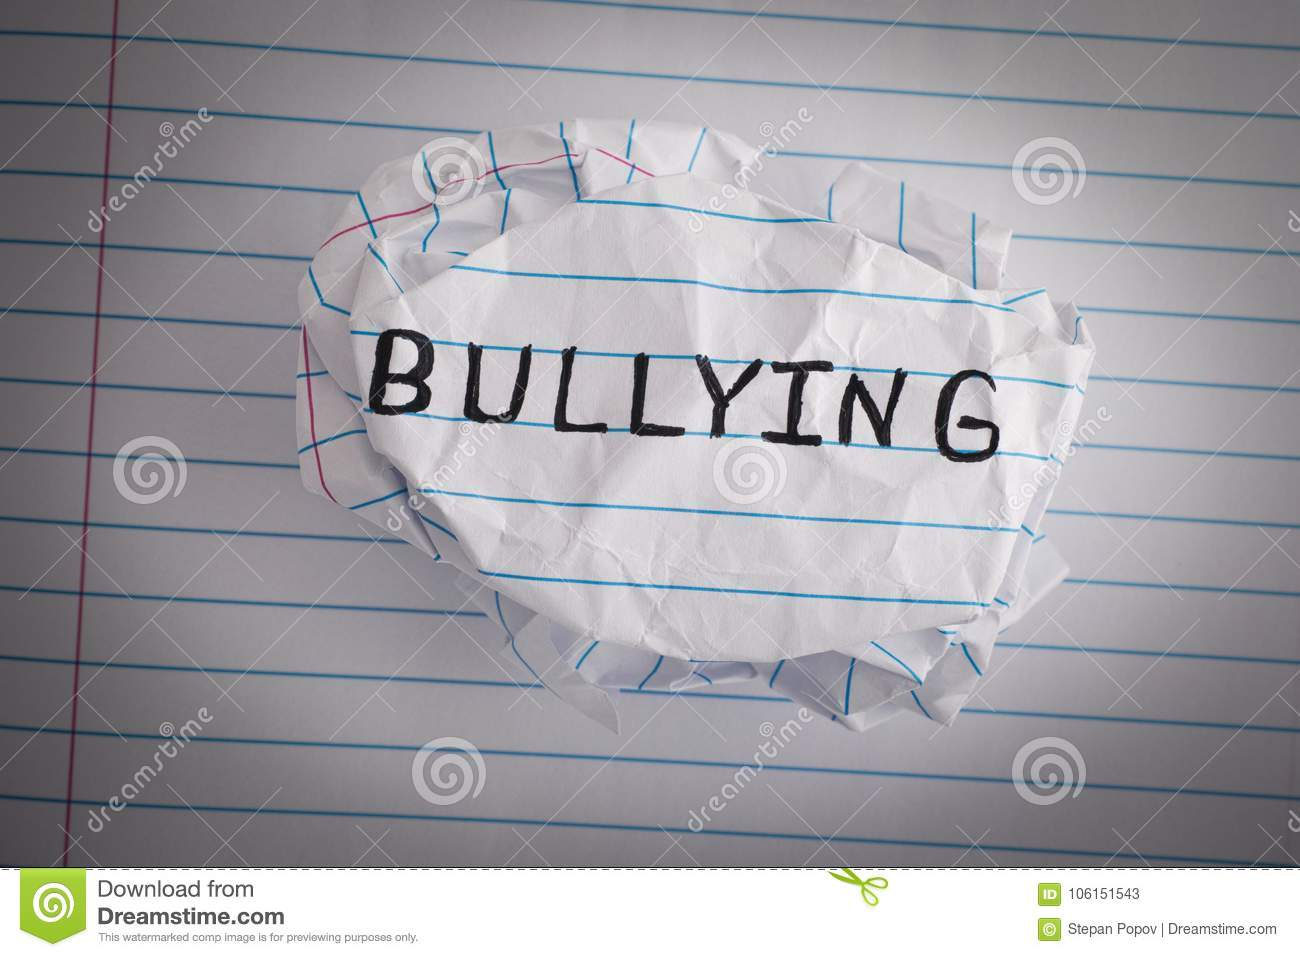 Bullying. Crumpled paper ball with word Bullying